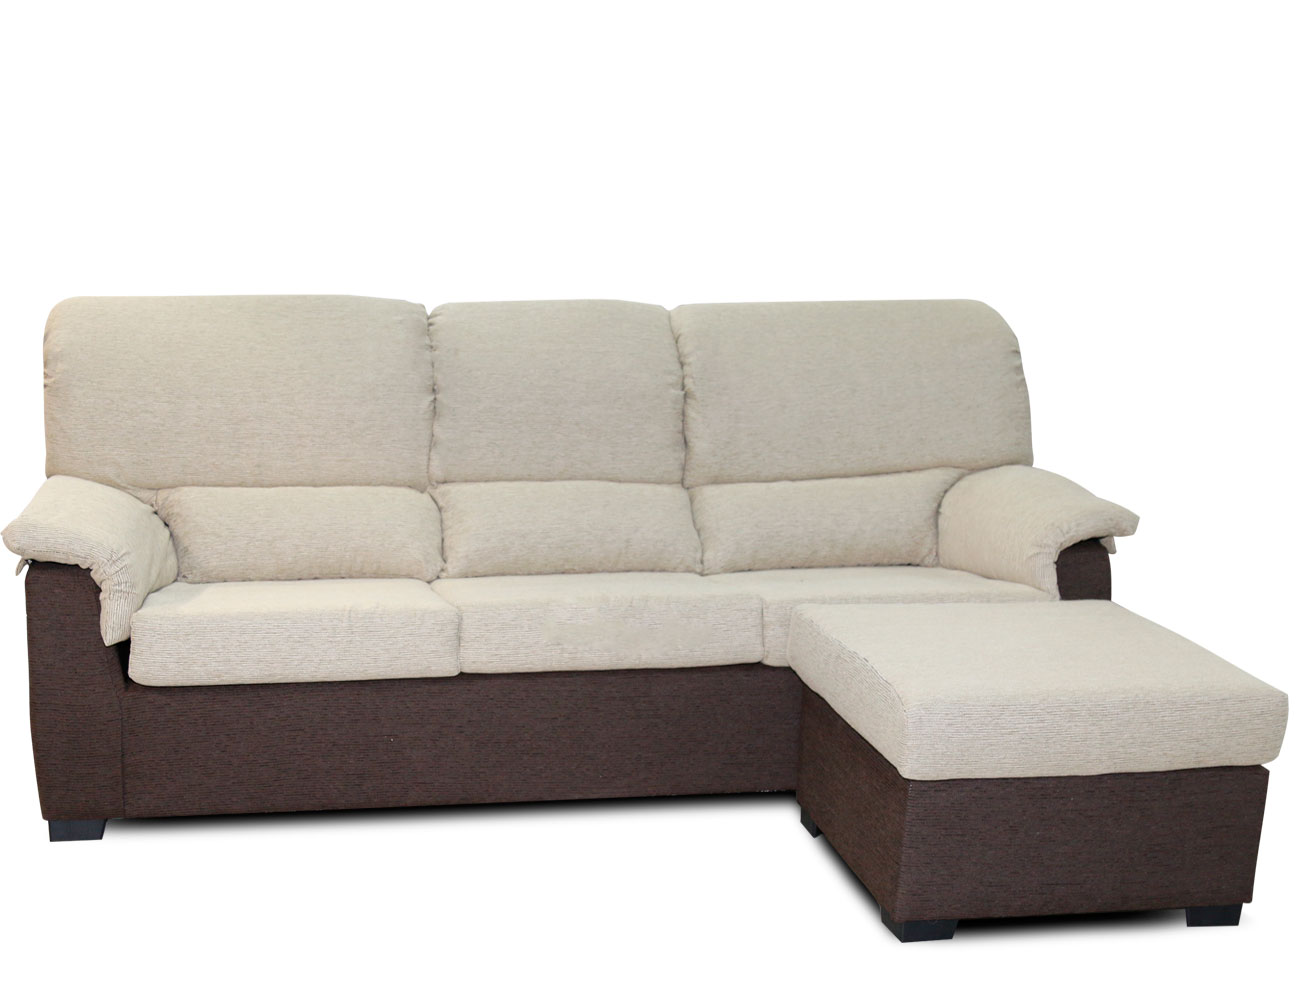 Sof chaiselongue barato con puf reversible 15285 for Muebles online economicos